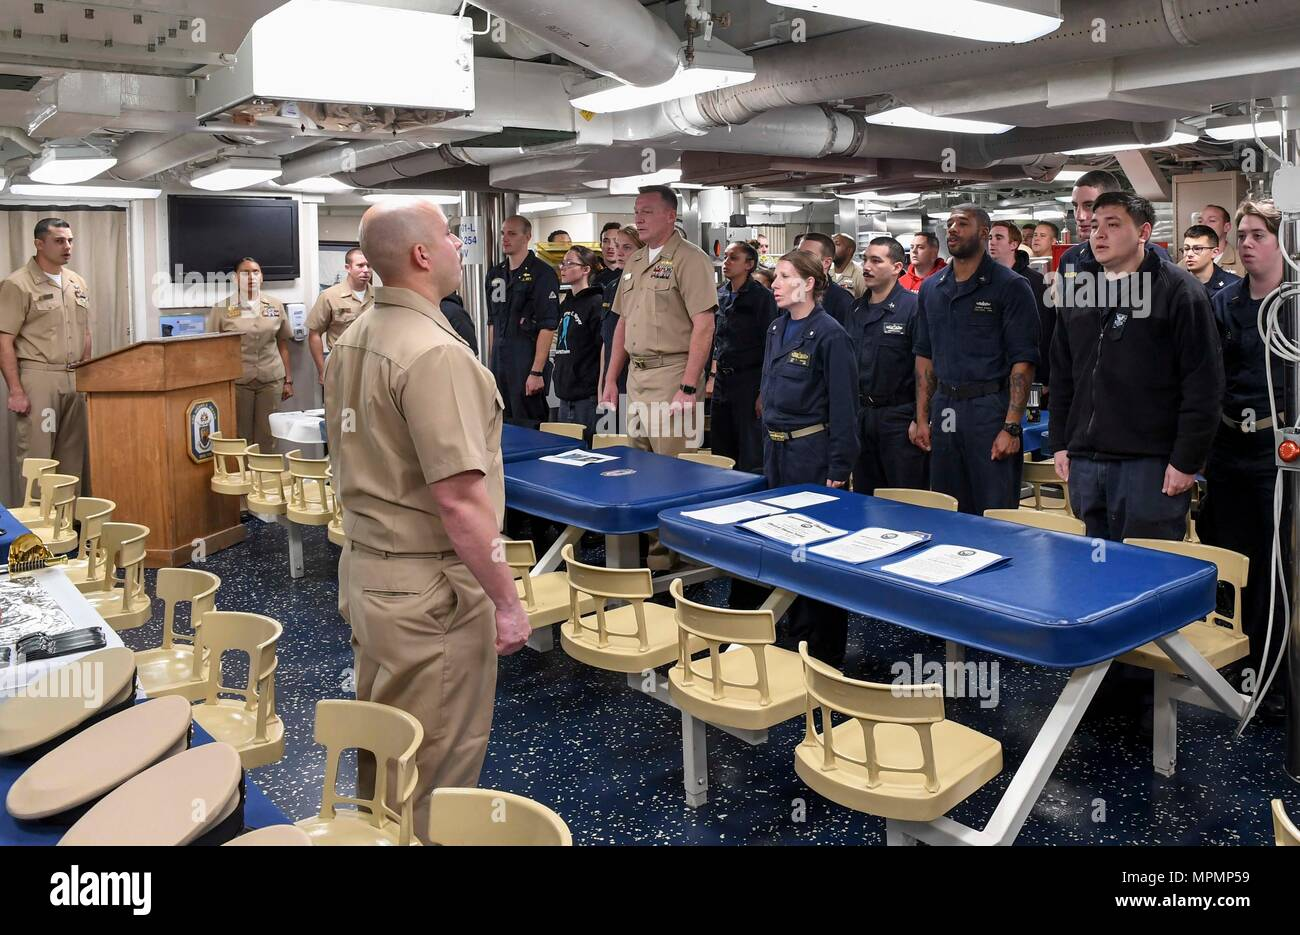 170401 n rm689 018 south china sea april 1 2017 sailors recite the sailors creed at the start of the chief petty officer birthday celebration aboard